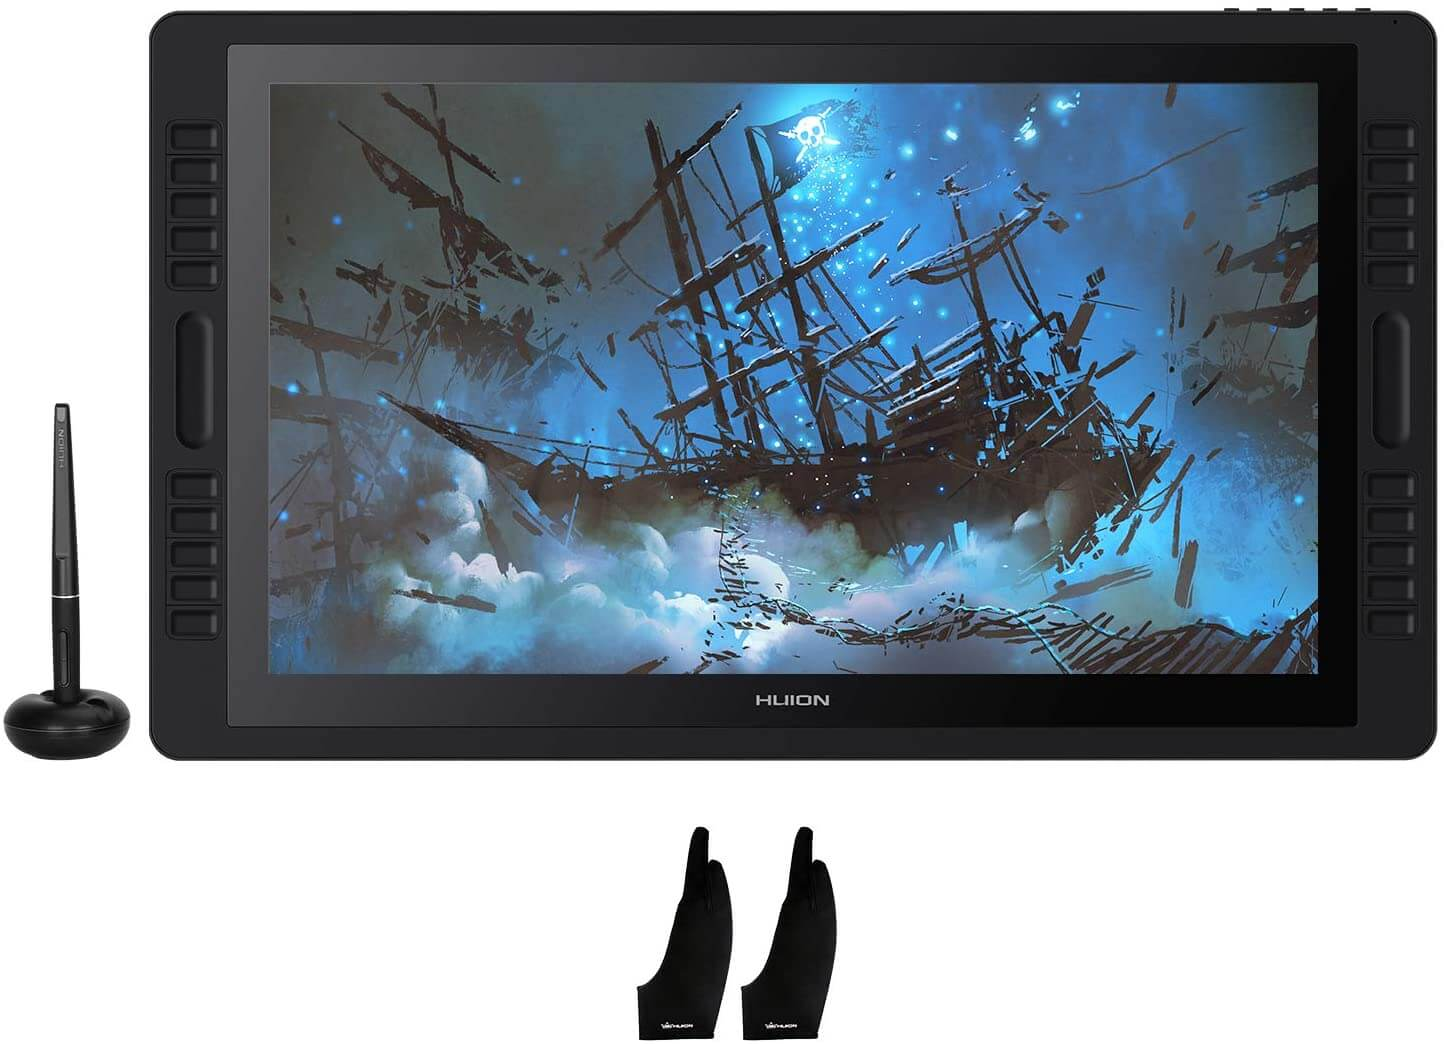 Huion KAMVAS Pro 22 – Best Tablet For Graphic Design And Video Editing